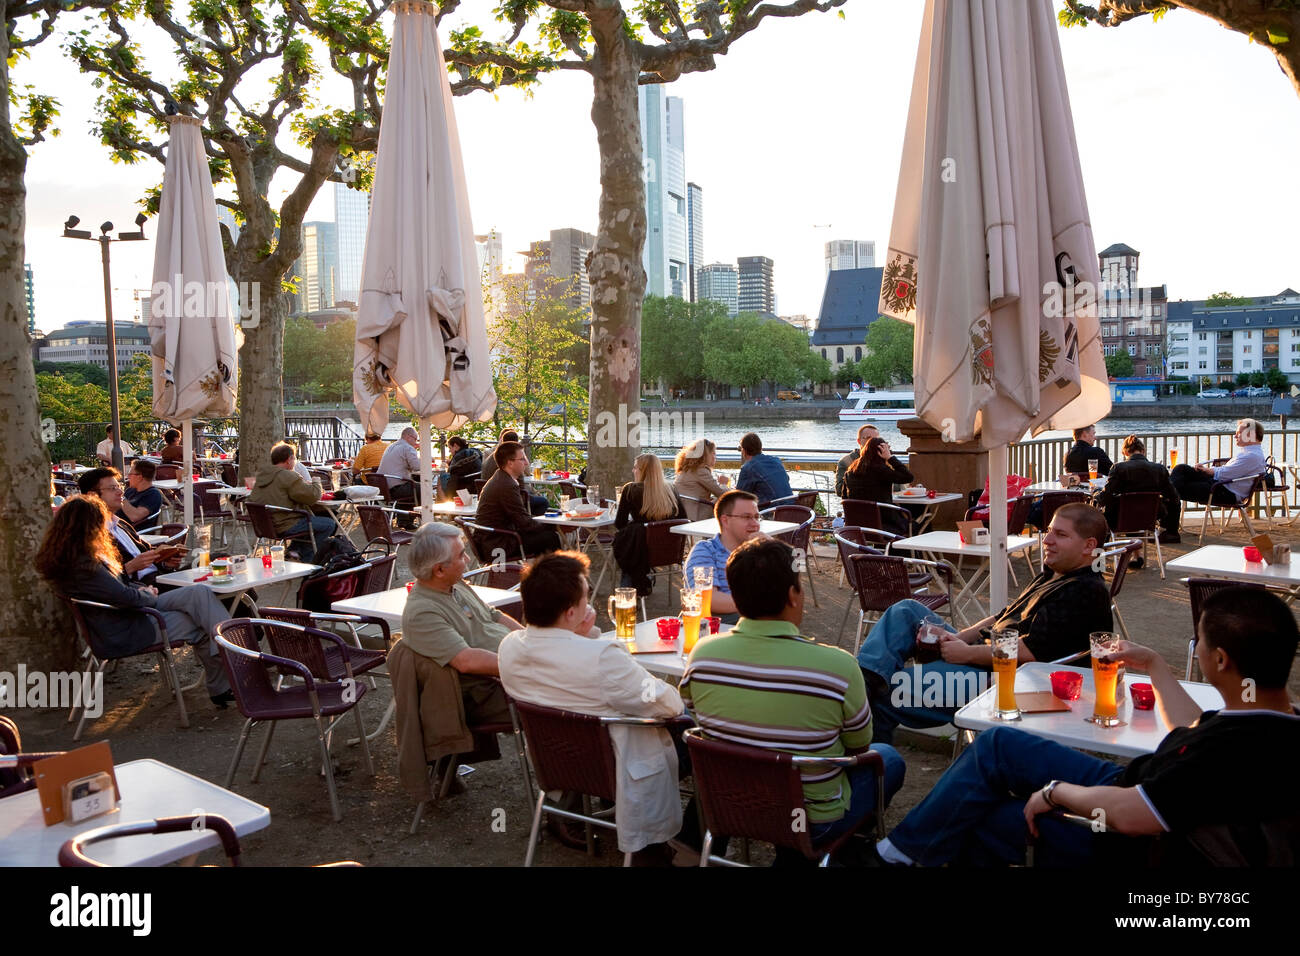 Outside cafe & beer garden, by Main river, Frankfurt, Germany - Stock Image